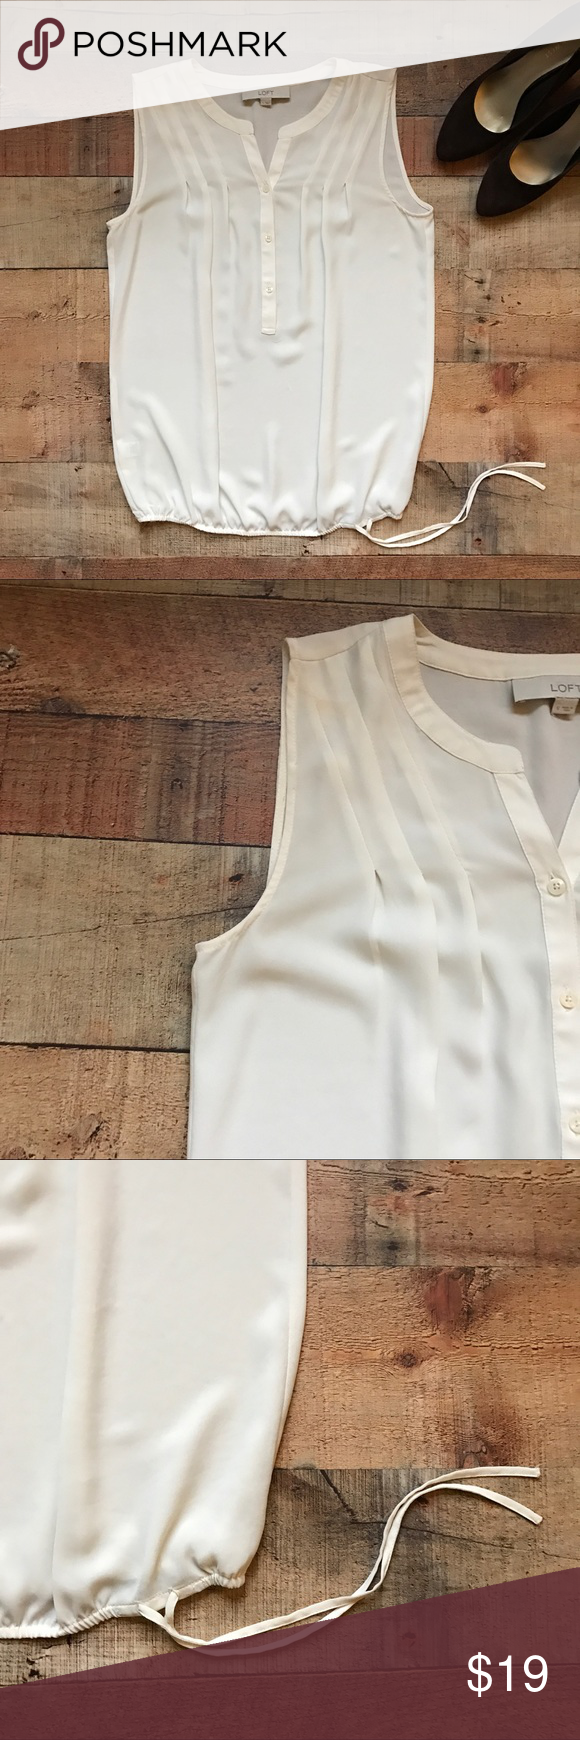 LOFT Pleated Blouse Gently used and lightweight top. Pleats and button down the front. The bottom has a pull tie. Looks great with everything and is fairly see through. Has extra button attached. LOFT Tops Blouses